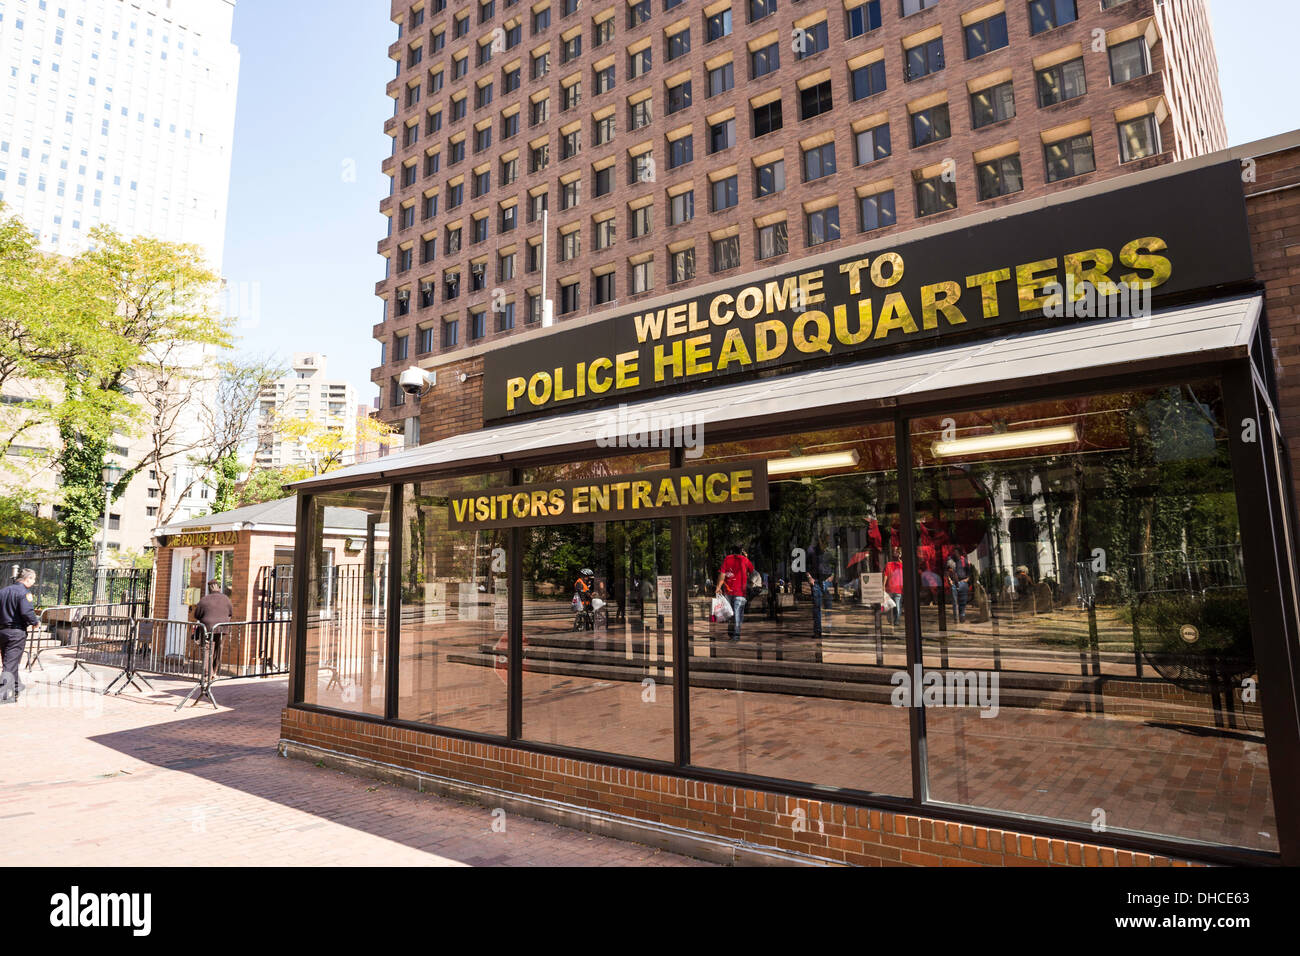 New York City Police Headquarters,  Visitors Entrance, One Police Plaza, NYC